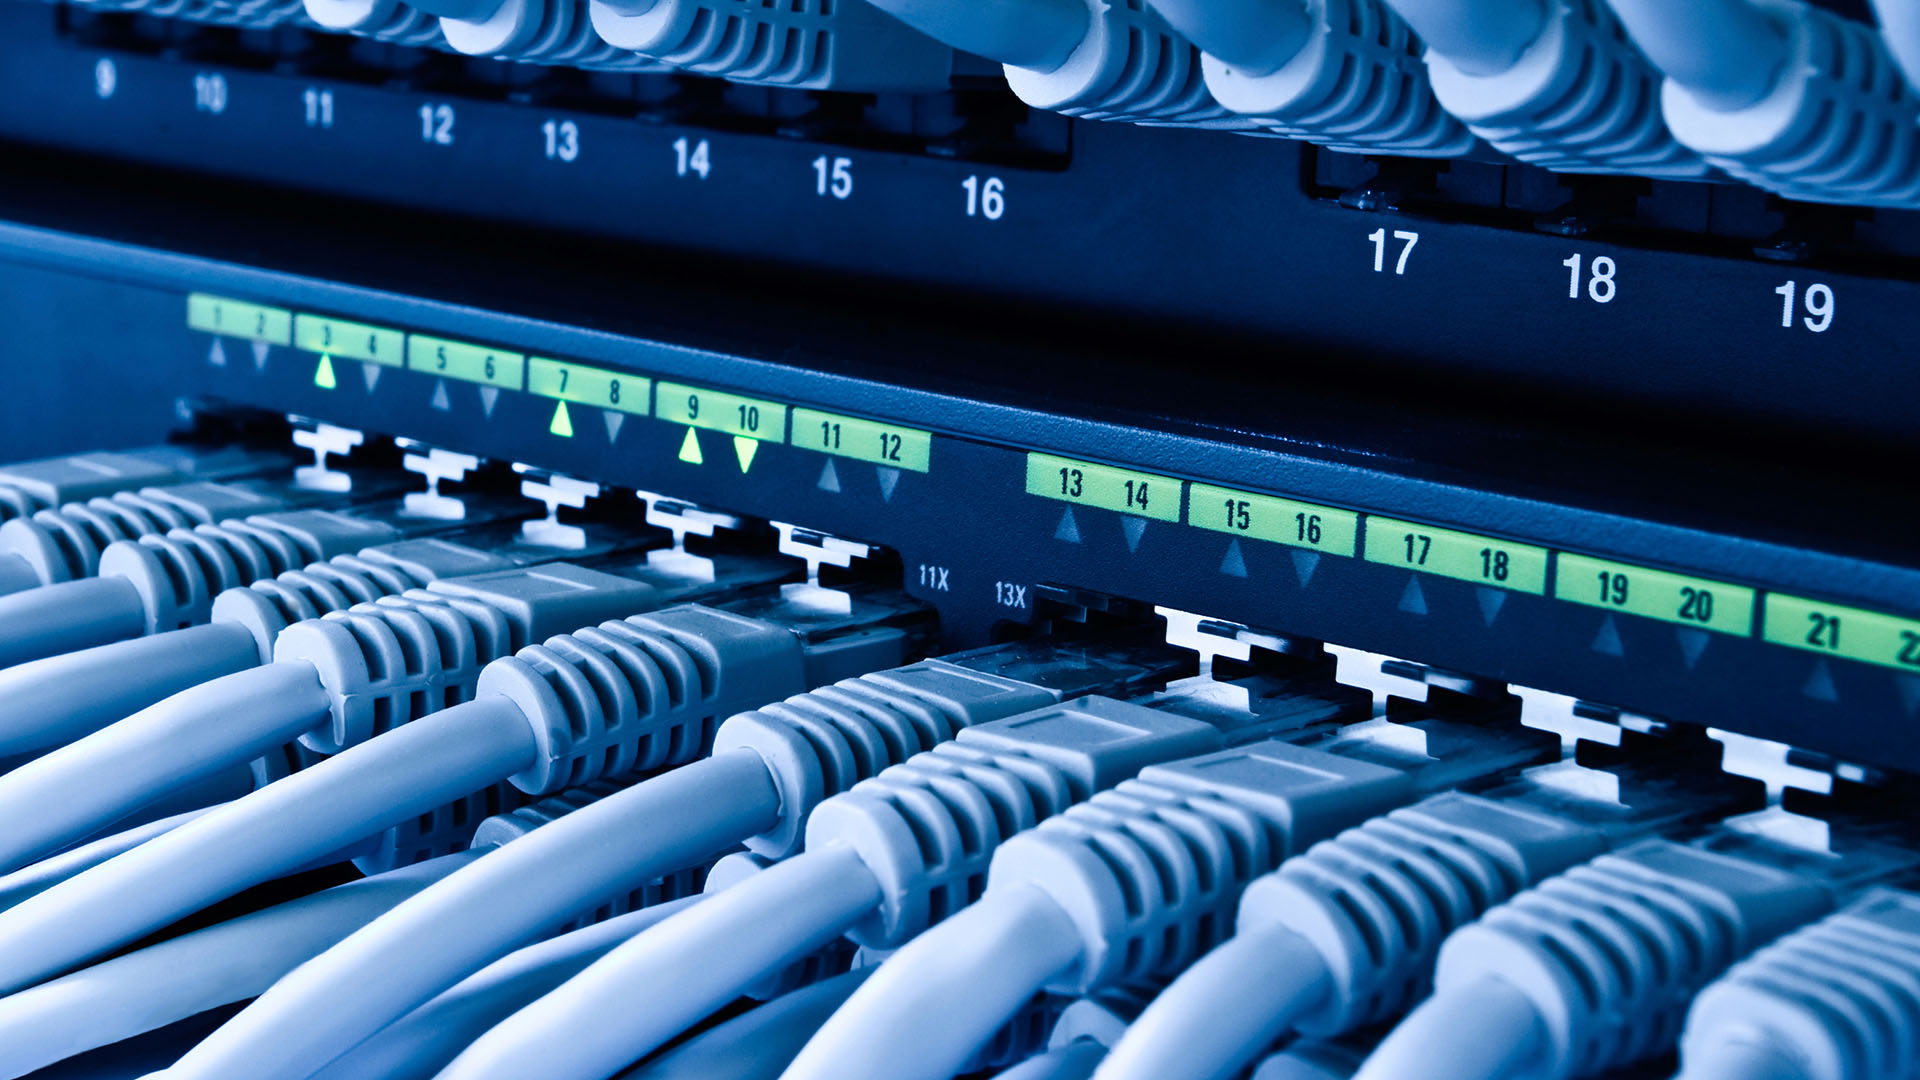 Palm Beach Florida Trusted Voice & Data Network Cabling Solutions